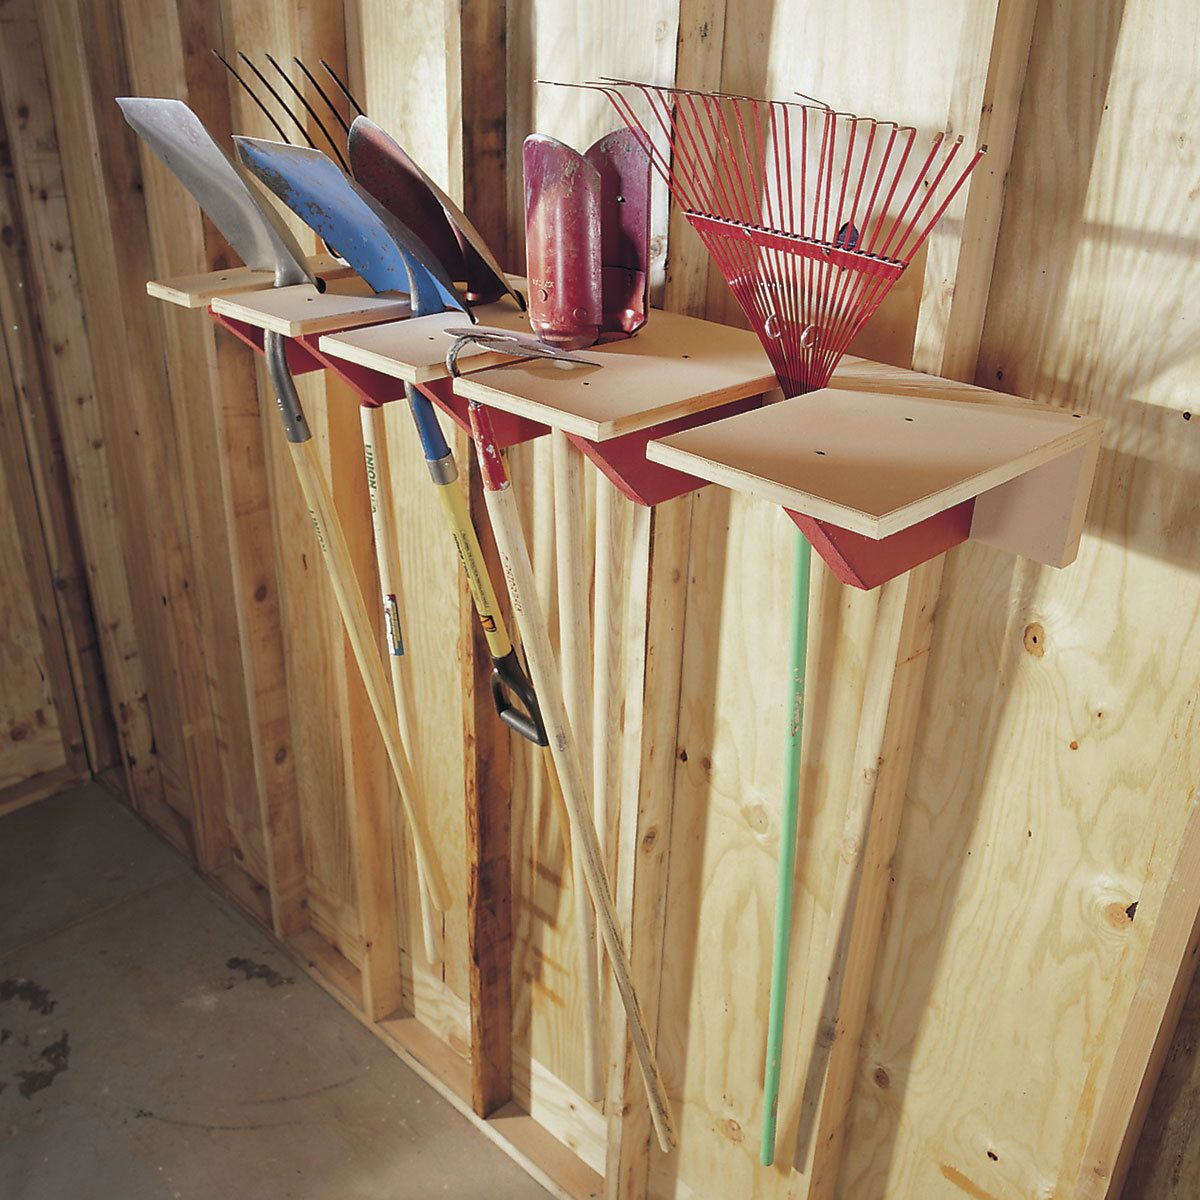 Clean and Store Garden Tools